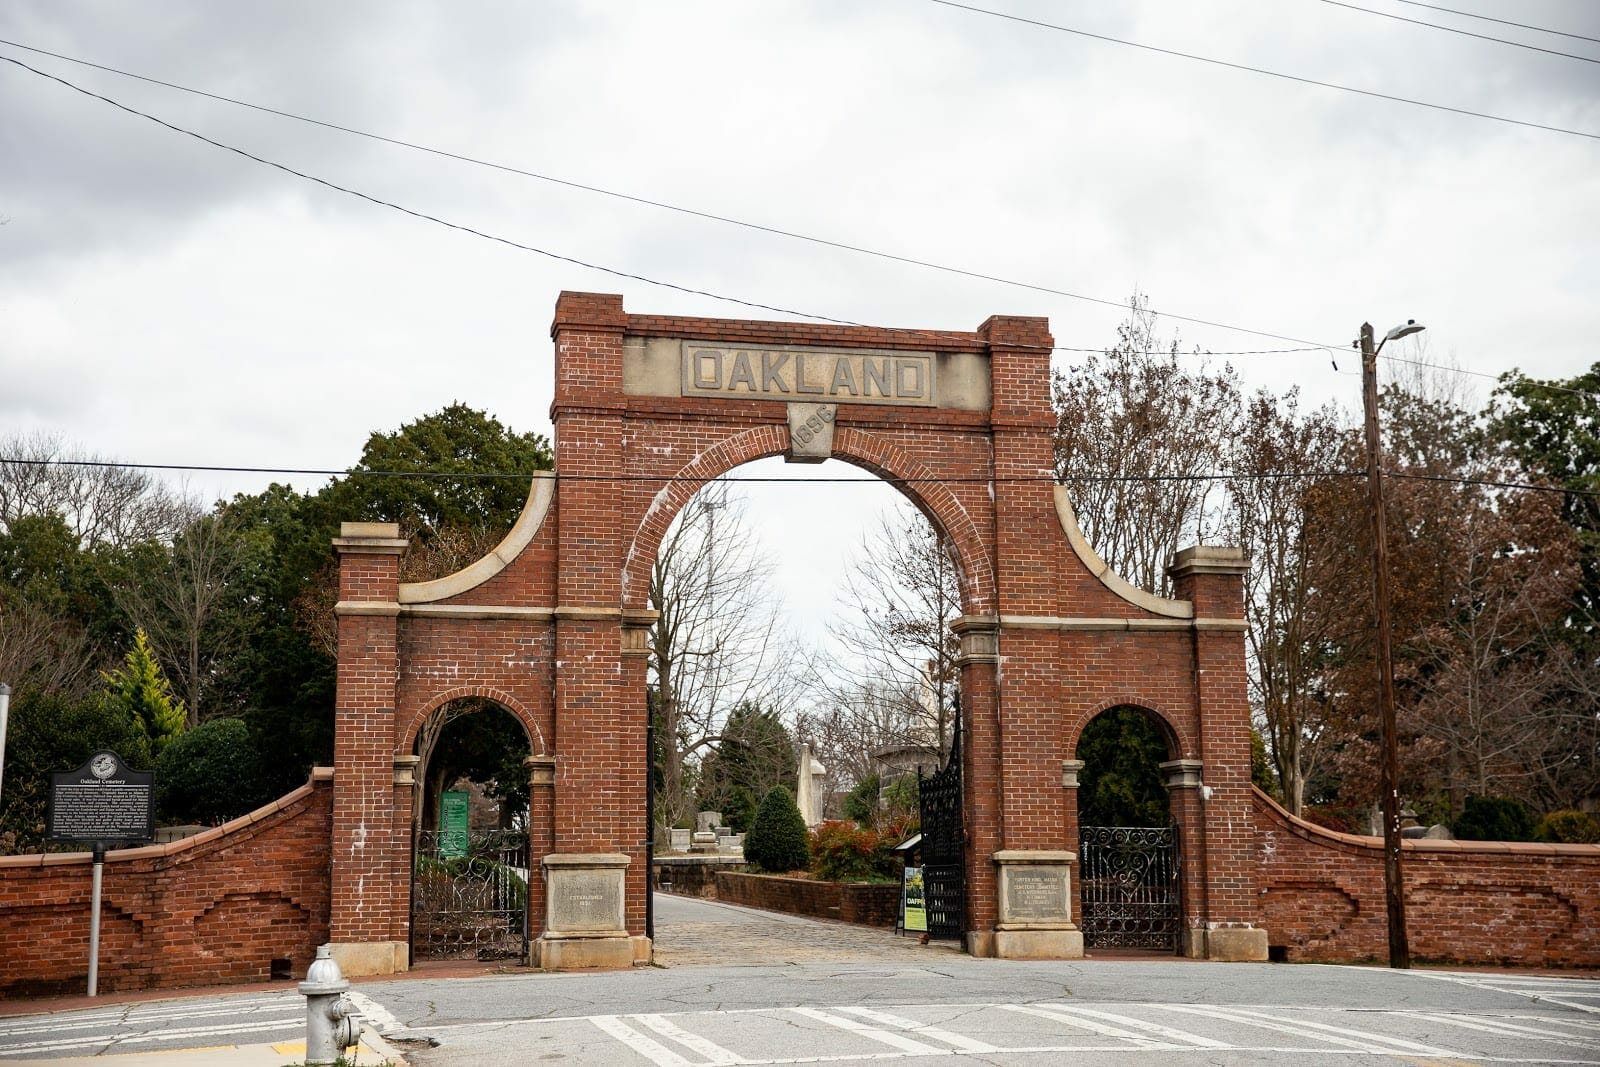 The entrance to Oakland Cemetery.